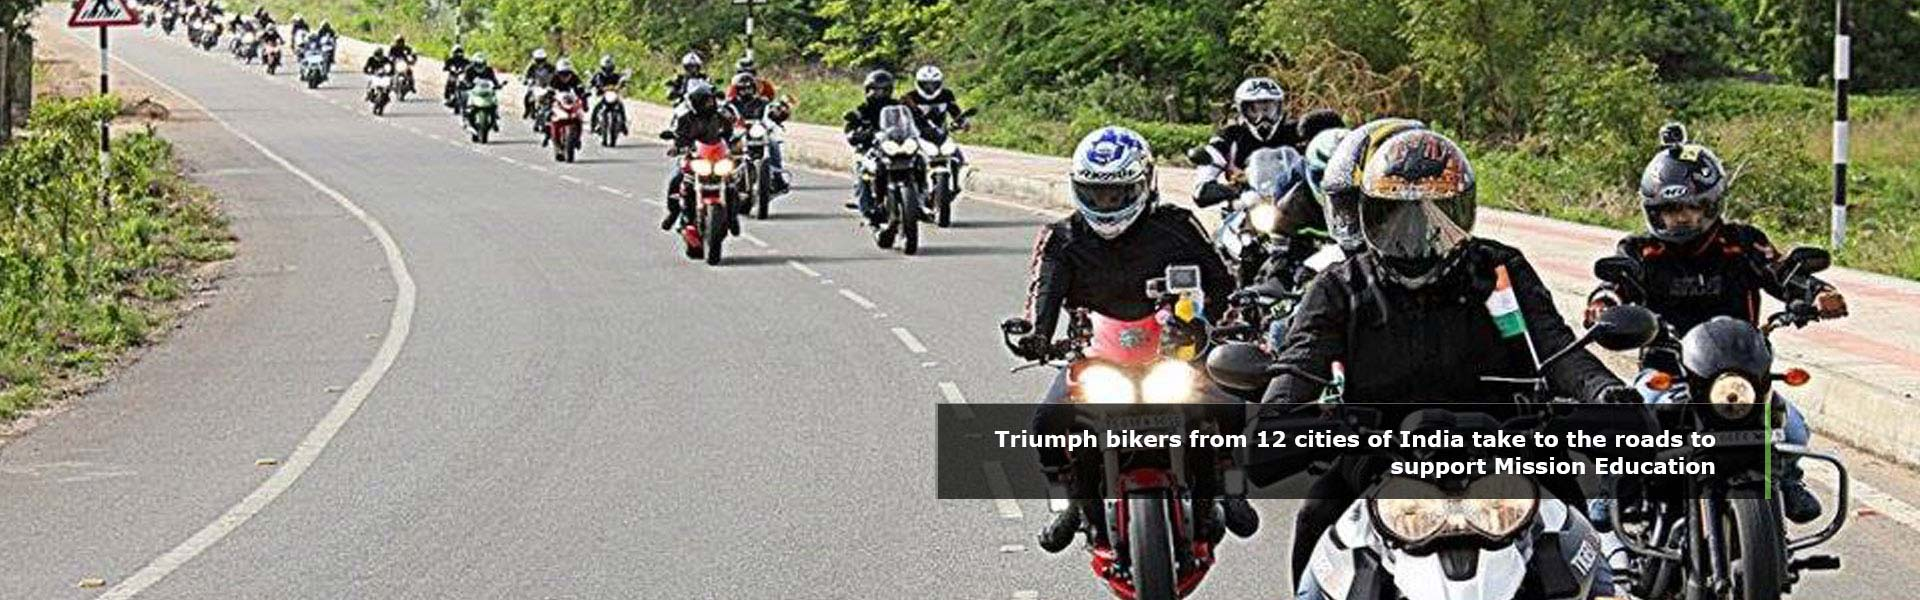 Triumph bikers from 12 cities of India take to the roads to supprt Mission Education